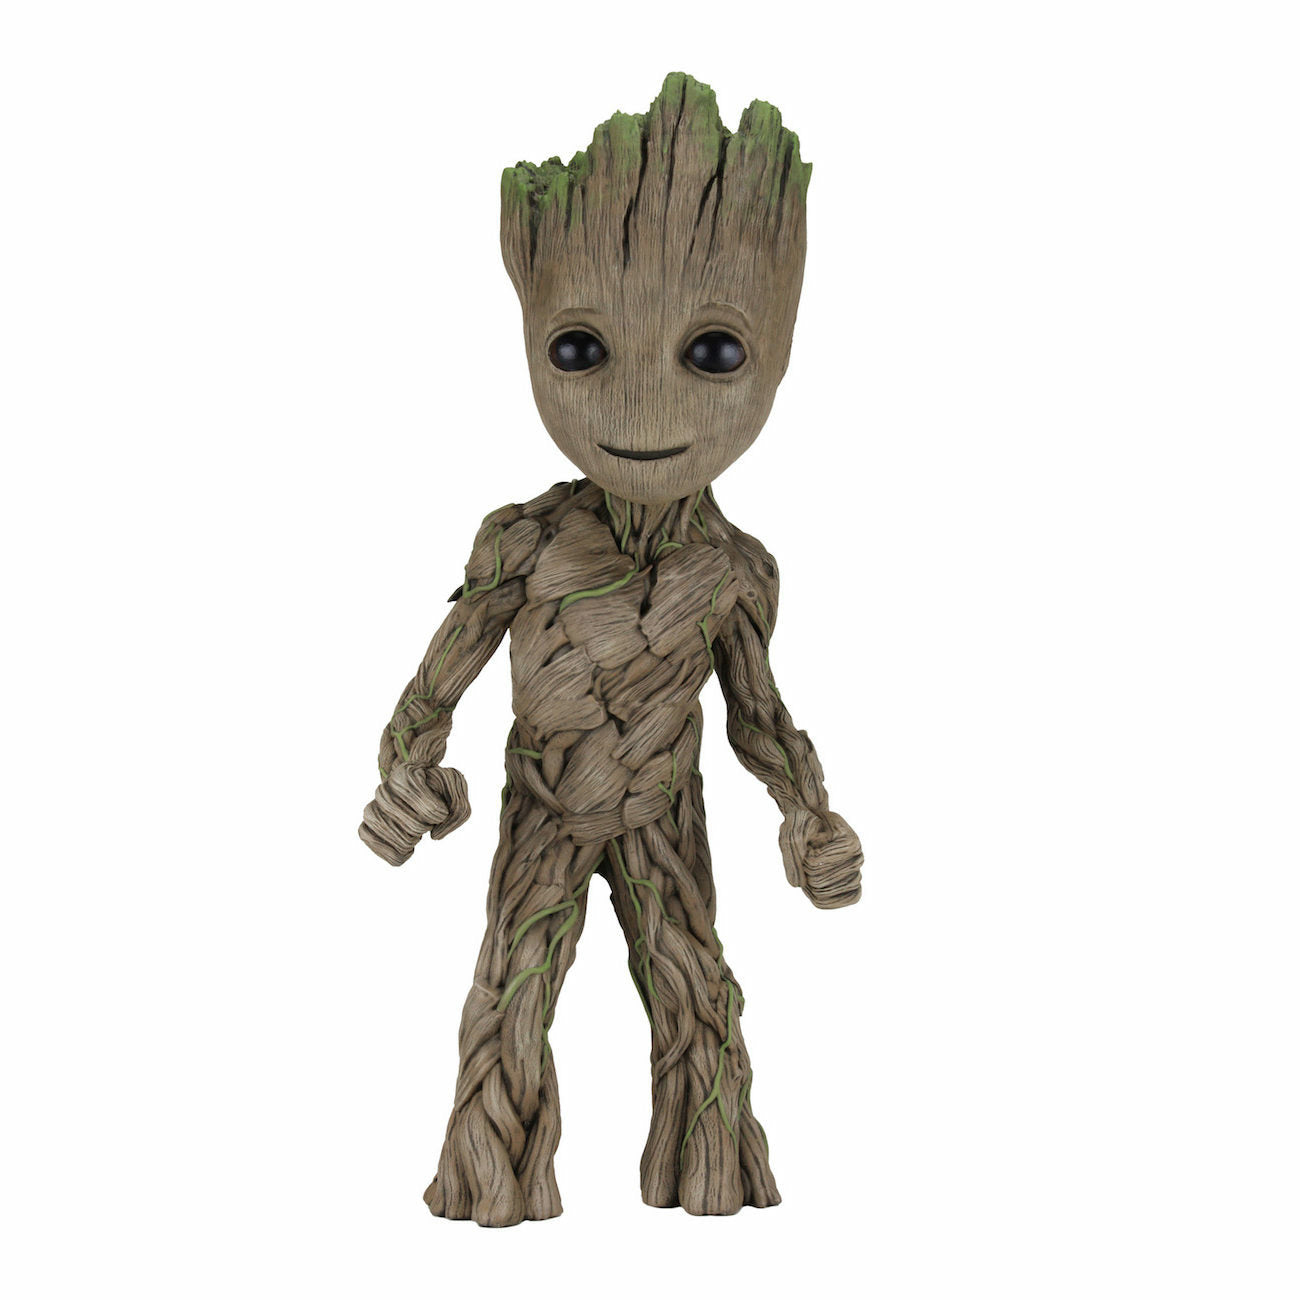 Guardians of the Galaxy 2 Groot 30 inch Foam Figure